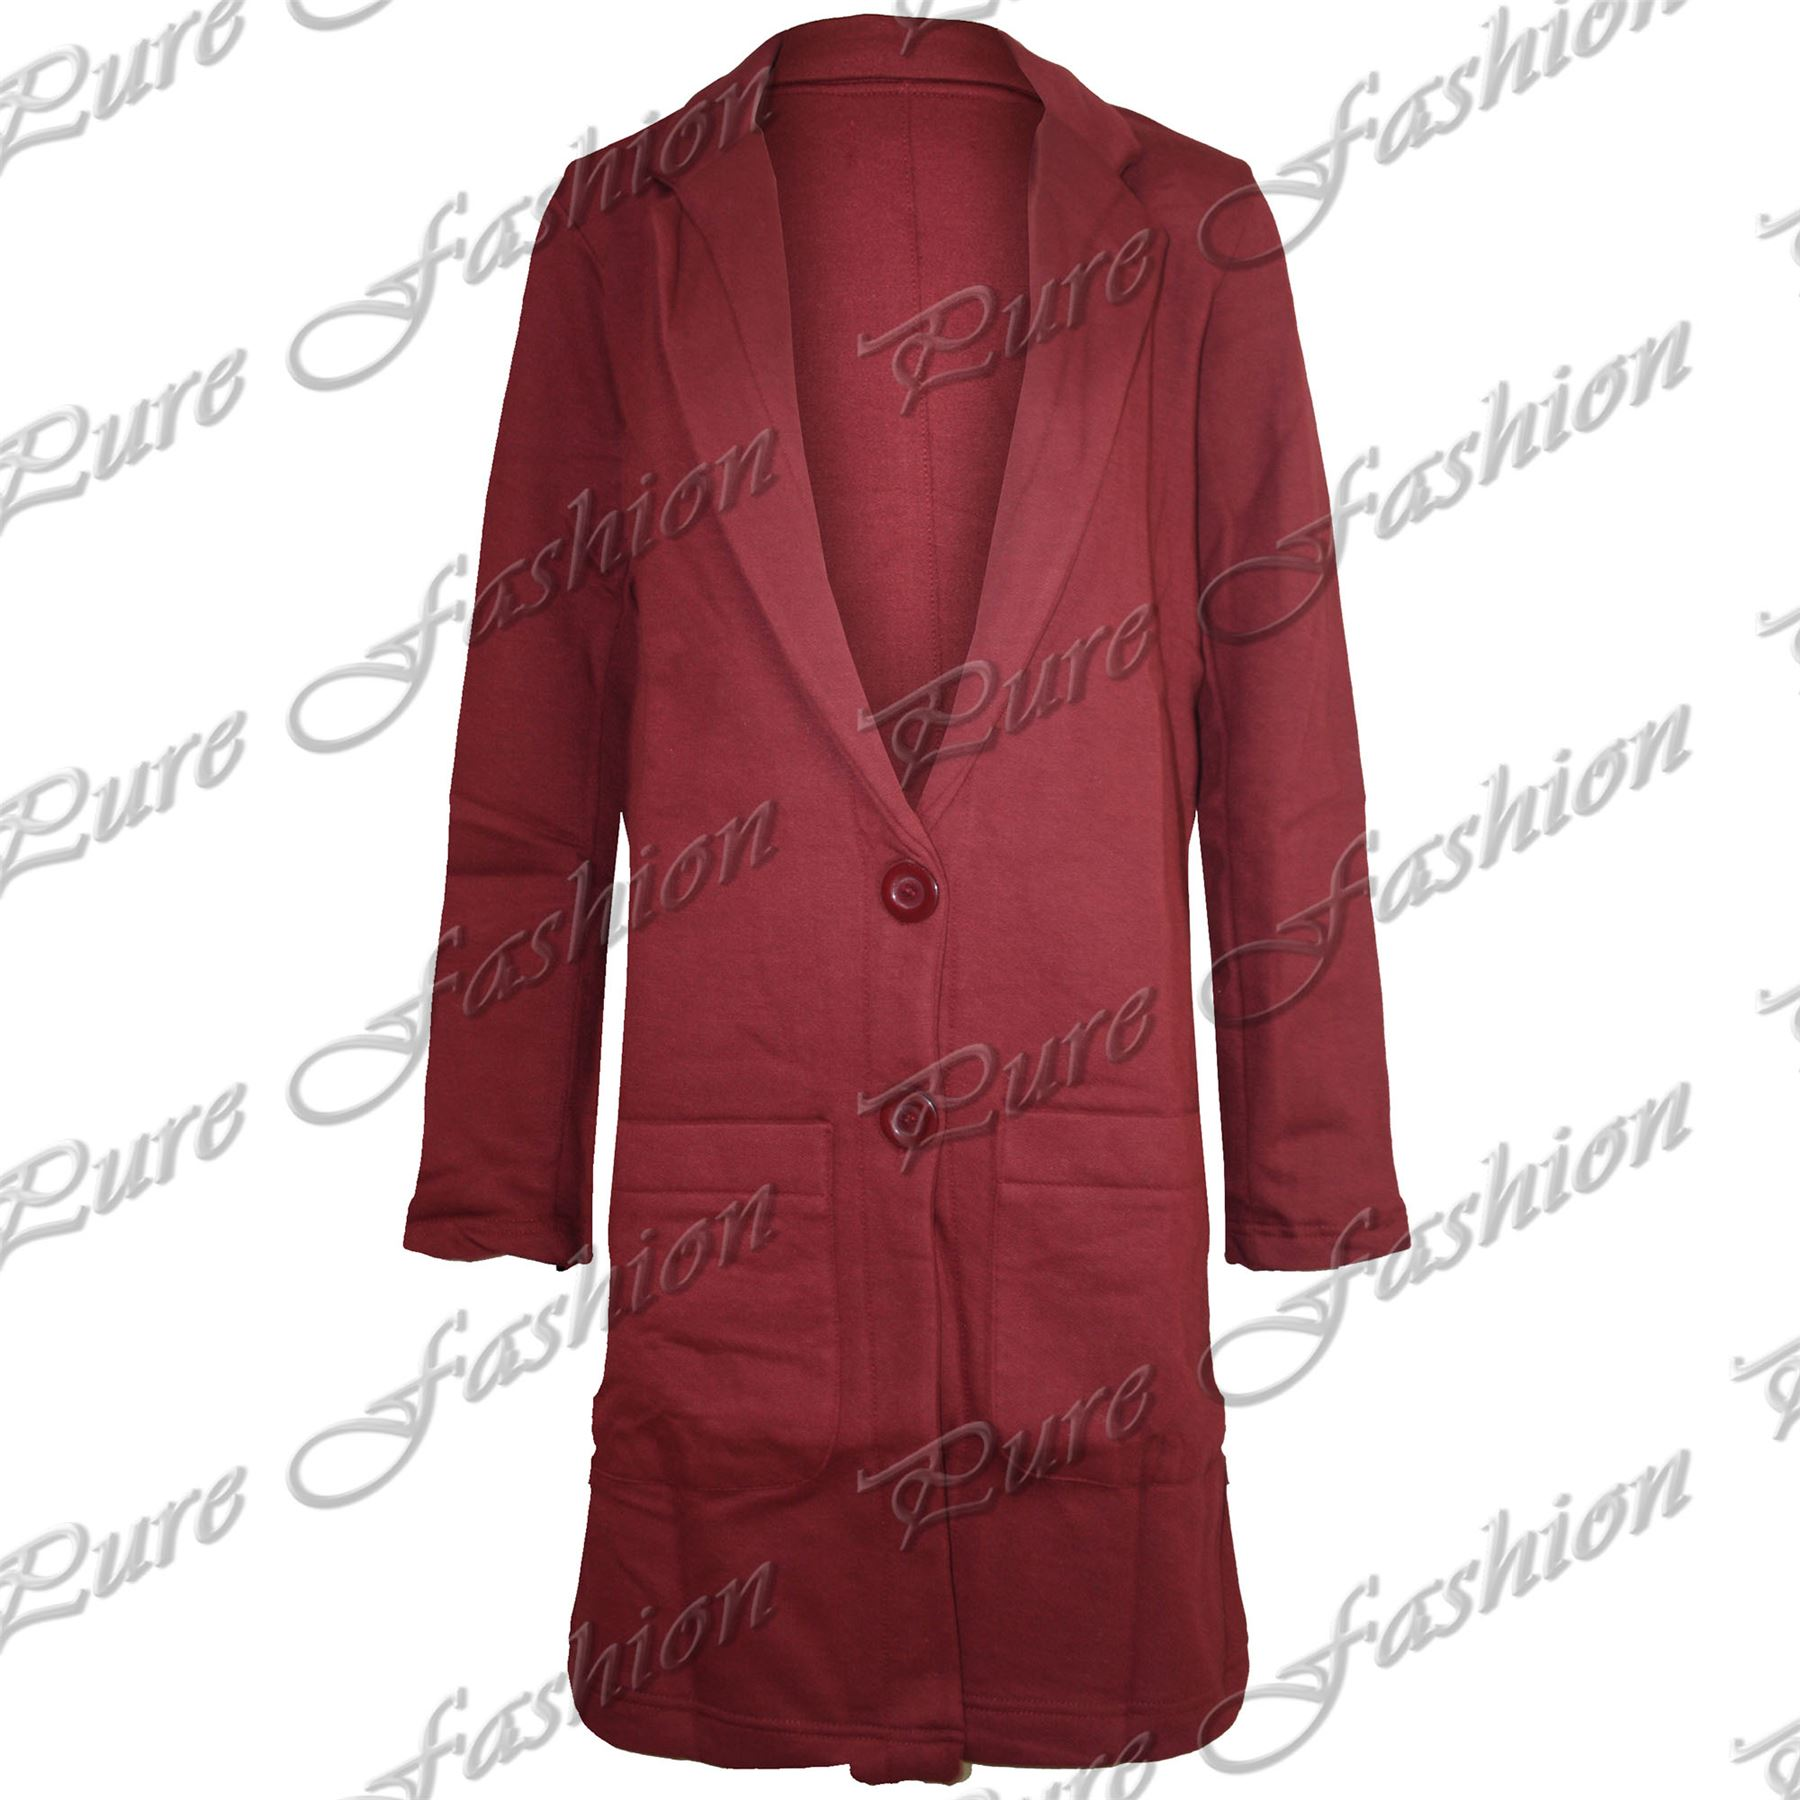 Womens-Ladies-Boyfriend-Tartan-Long-Sleeves-Front-Long-Coat-Button-Jacket-Blazer